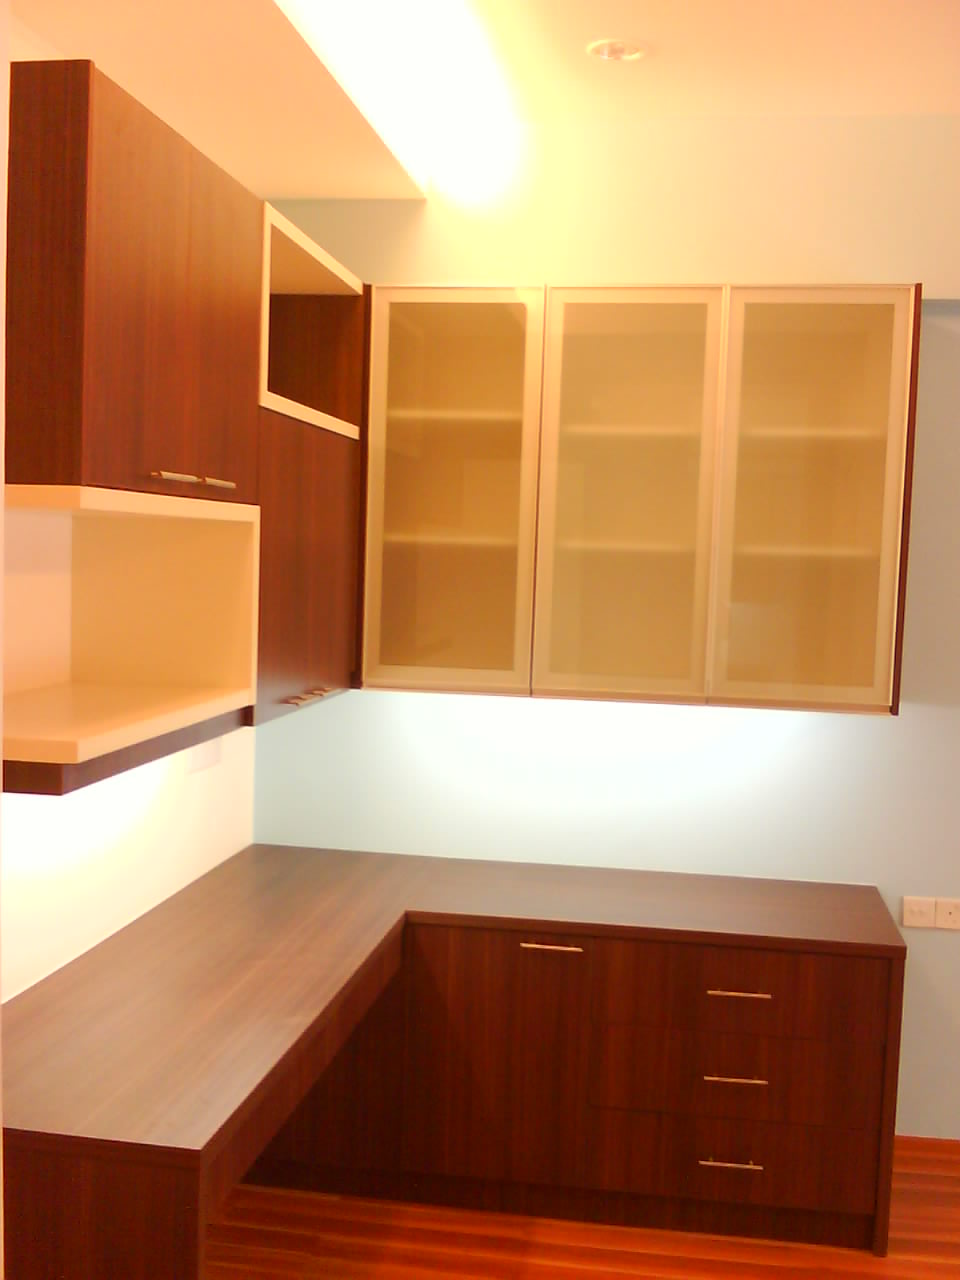 Cabinet design kuala lumpur study cabinet for Cupboard cabinet designs